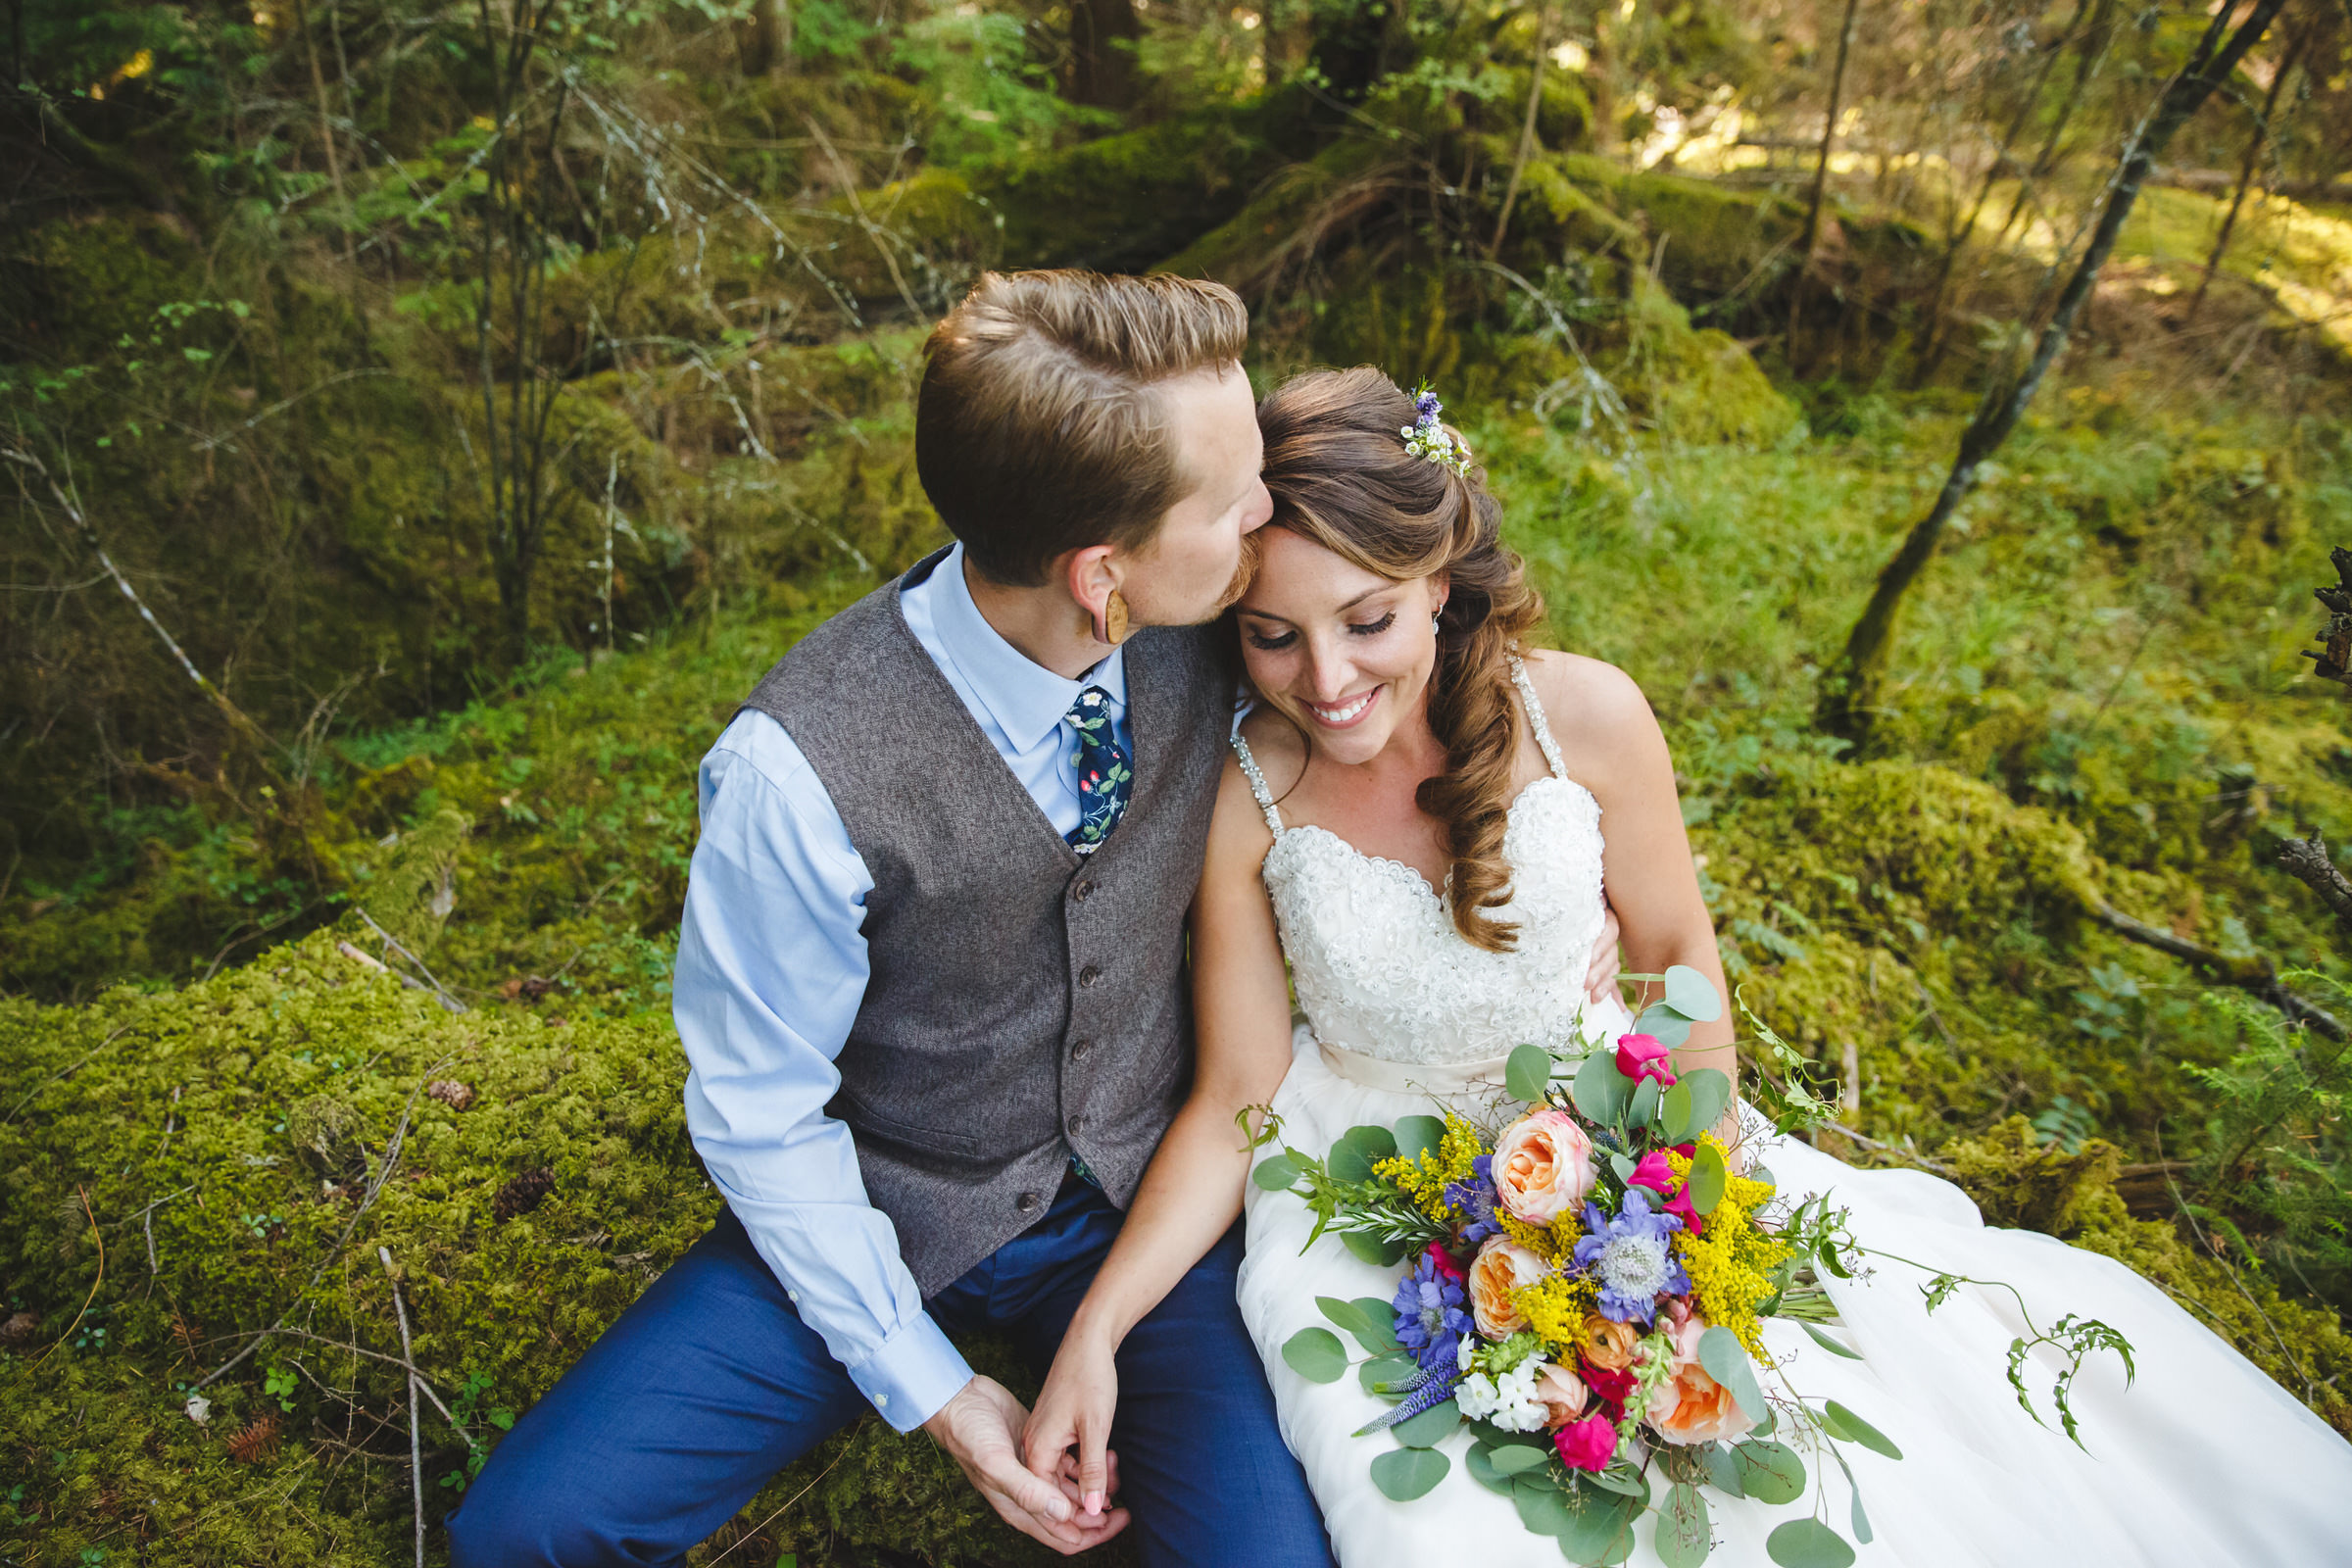 bride-and-groom-in-mossy-forest-satya-curcio-photography